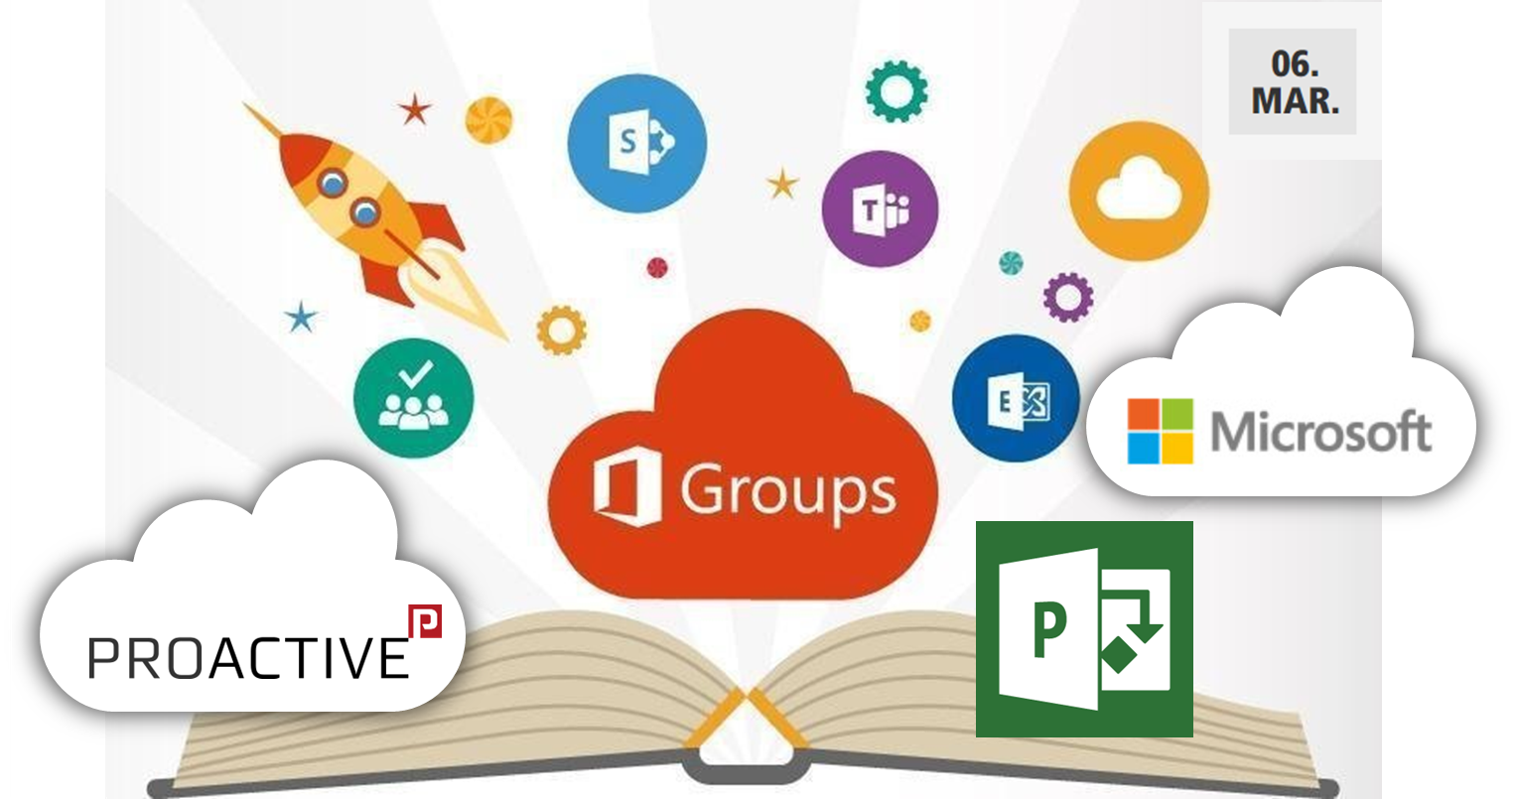 BROADCAST: Using Office 365 Groups connected to Project